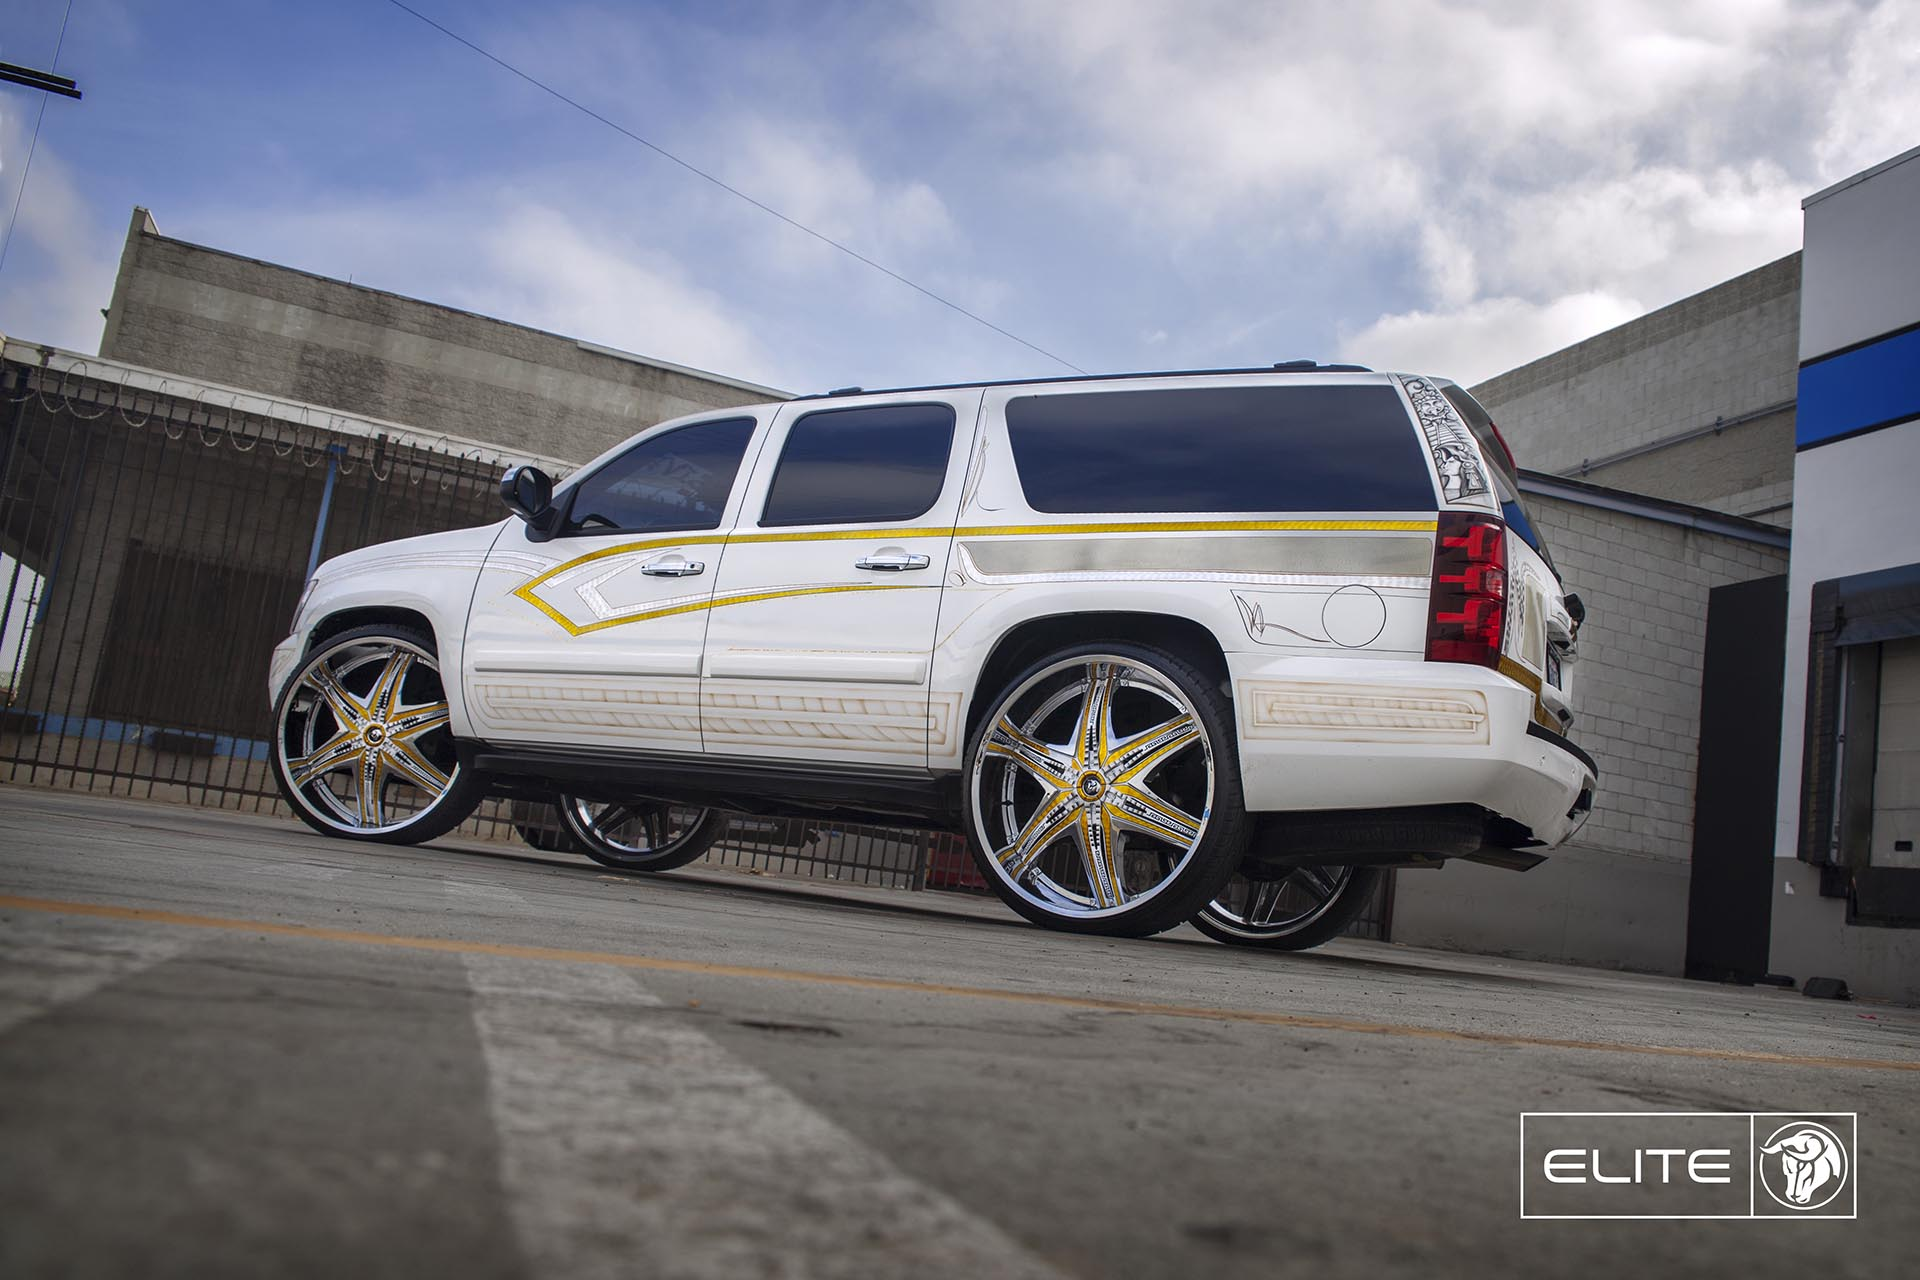 Diablo Elite on a Chevy Tahoe